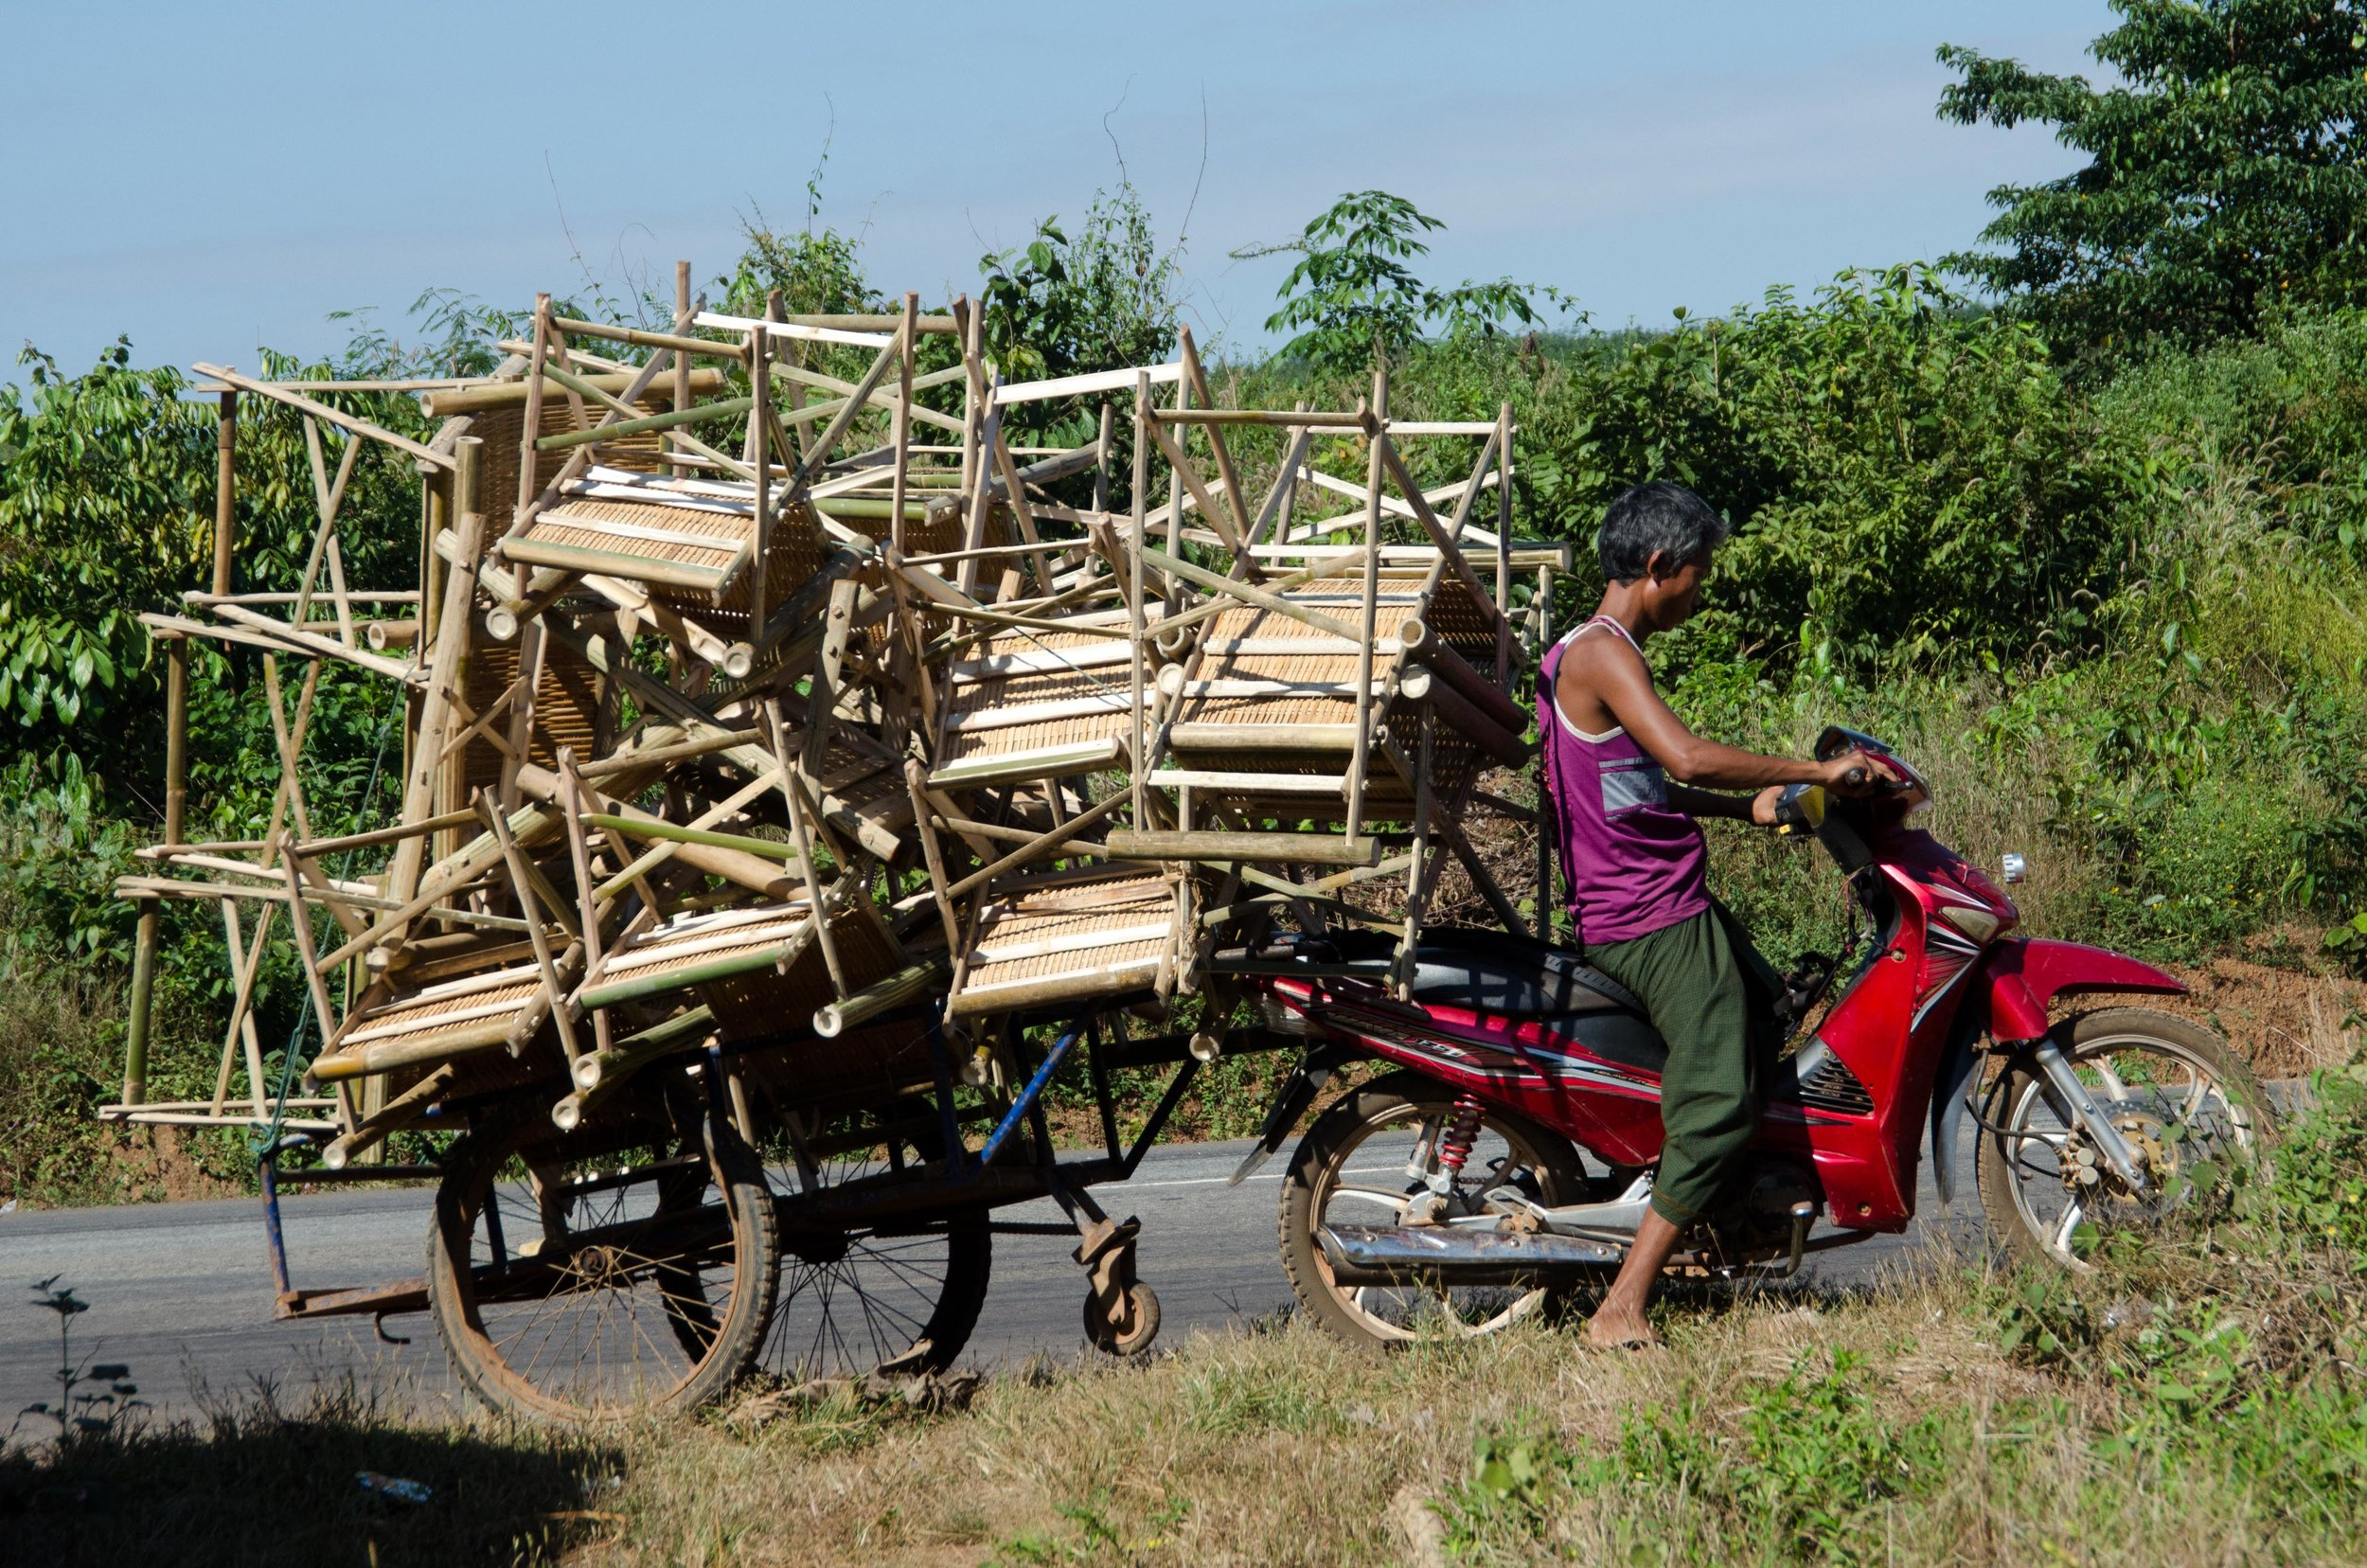 Carting bamboo furniture 001, en route to Yangon, Myanmar, 25 Nov 2017.jpg